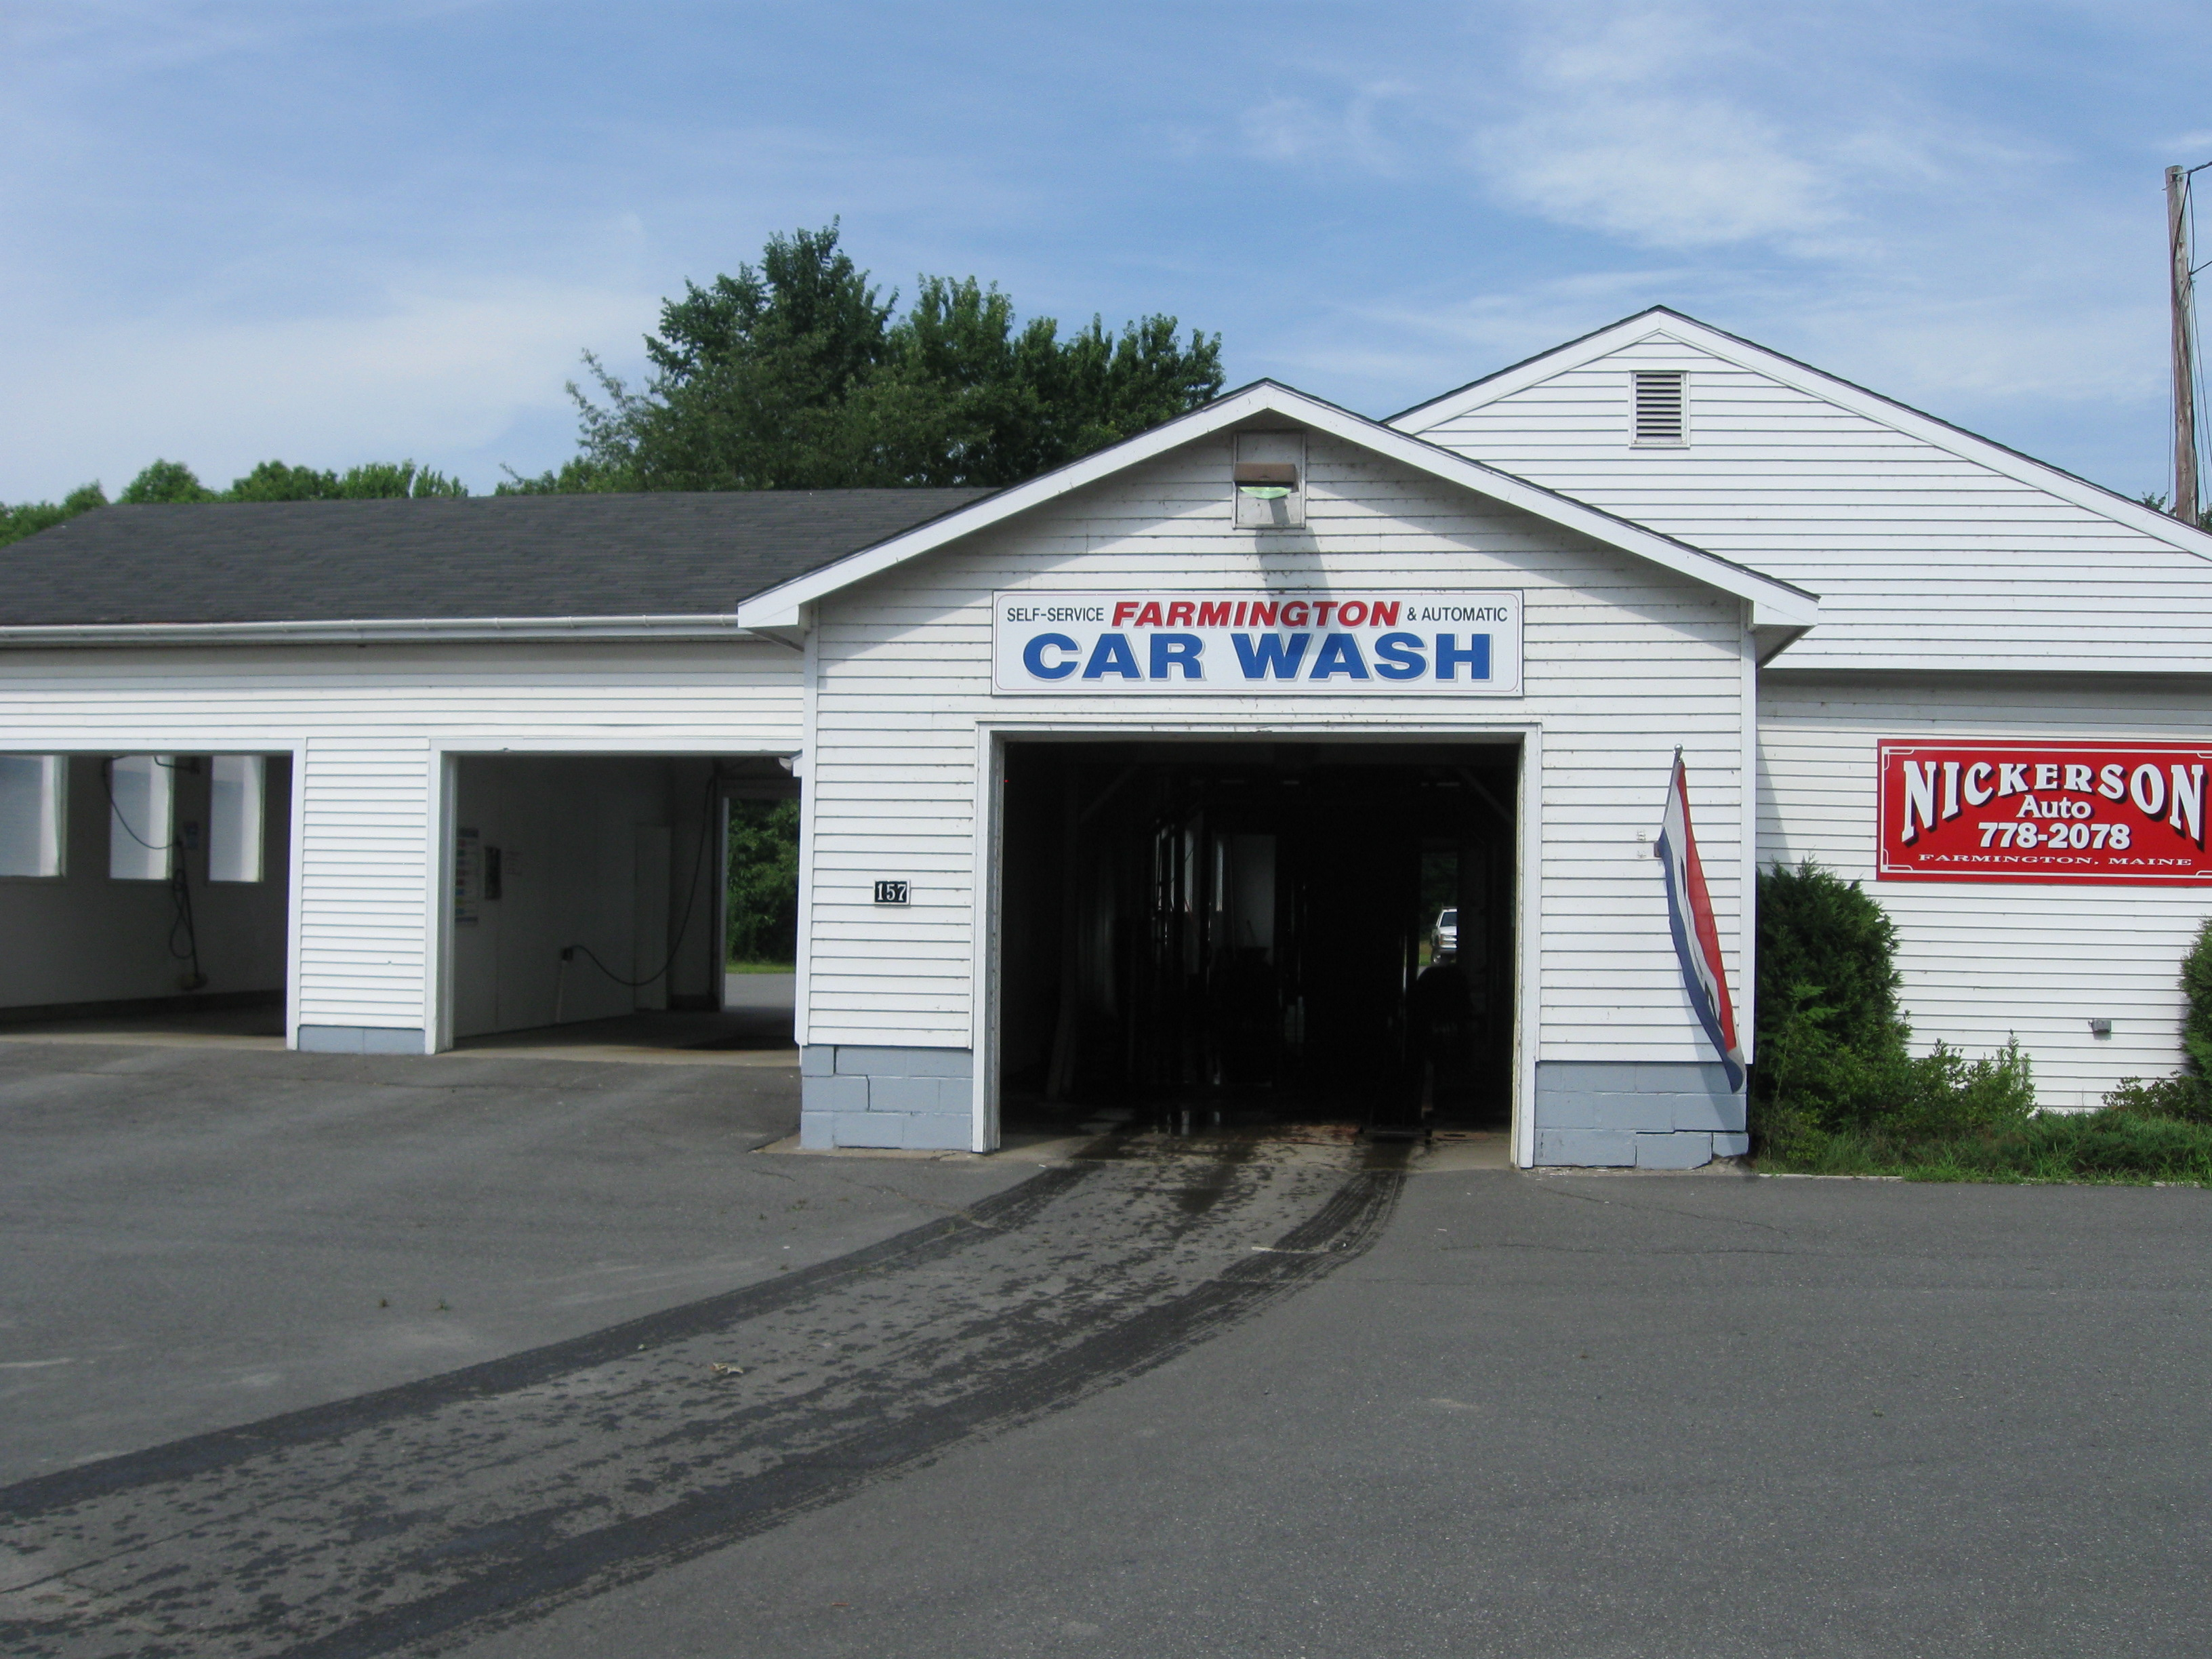 Nickerson auto sales news farmington car wash welcome to the farmington car wash blog now at farmingtoncarwash well be posting news and updates about the car wash along with the latest cars rubansaba